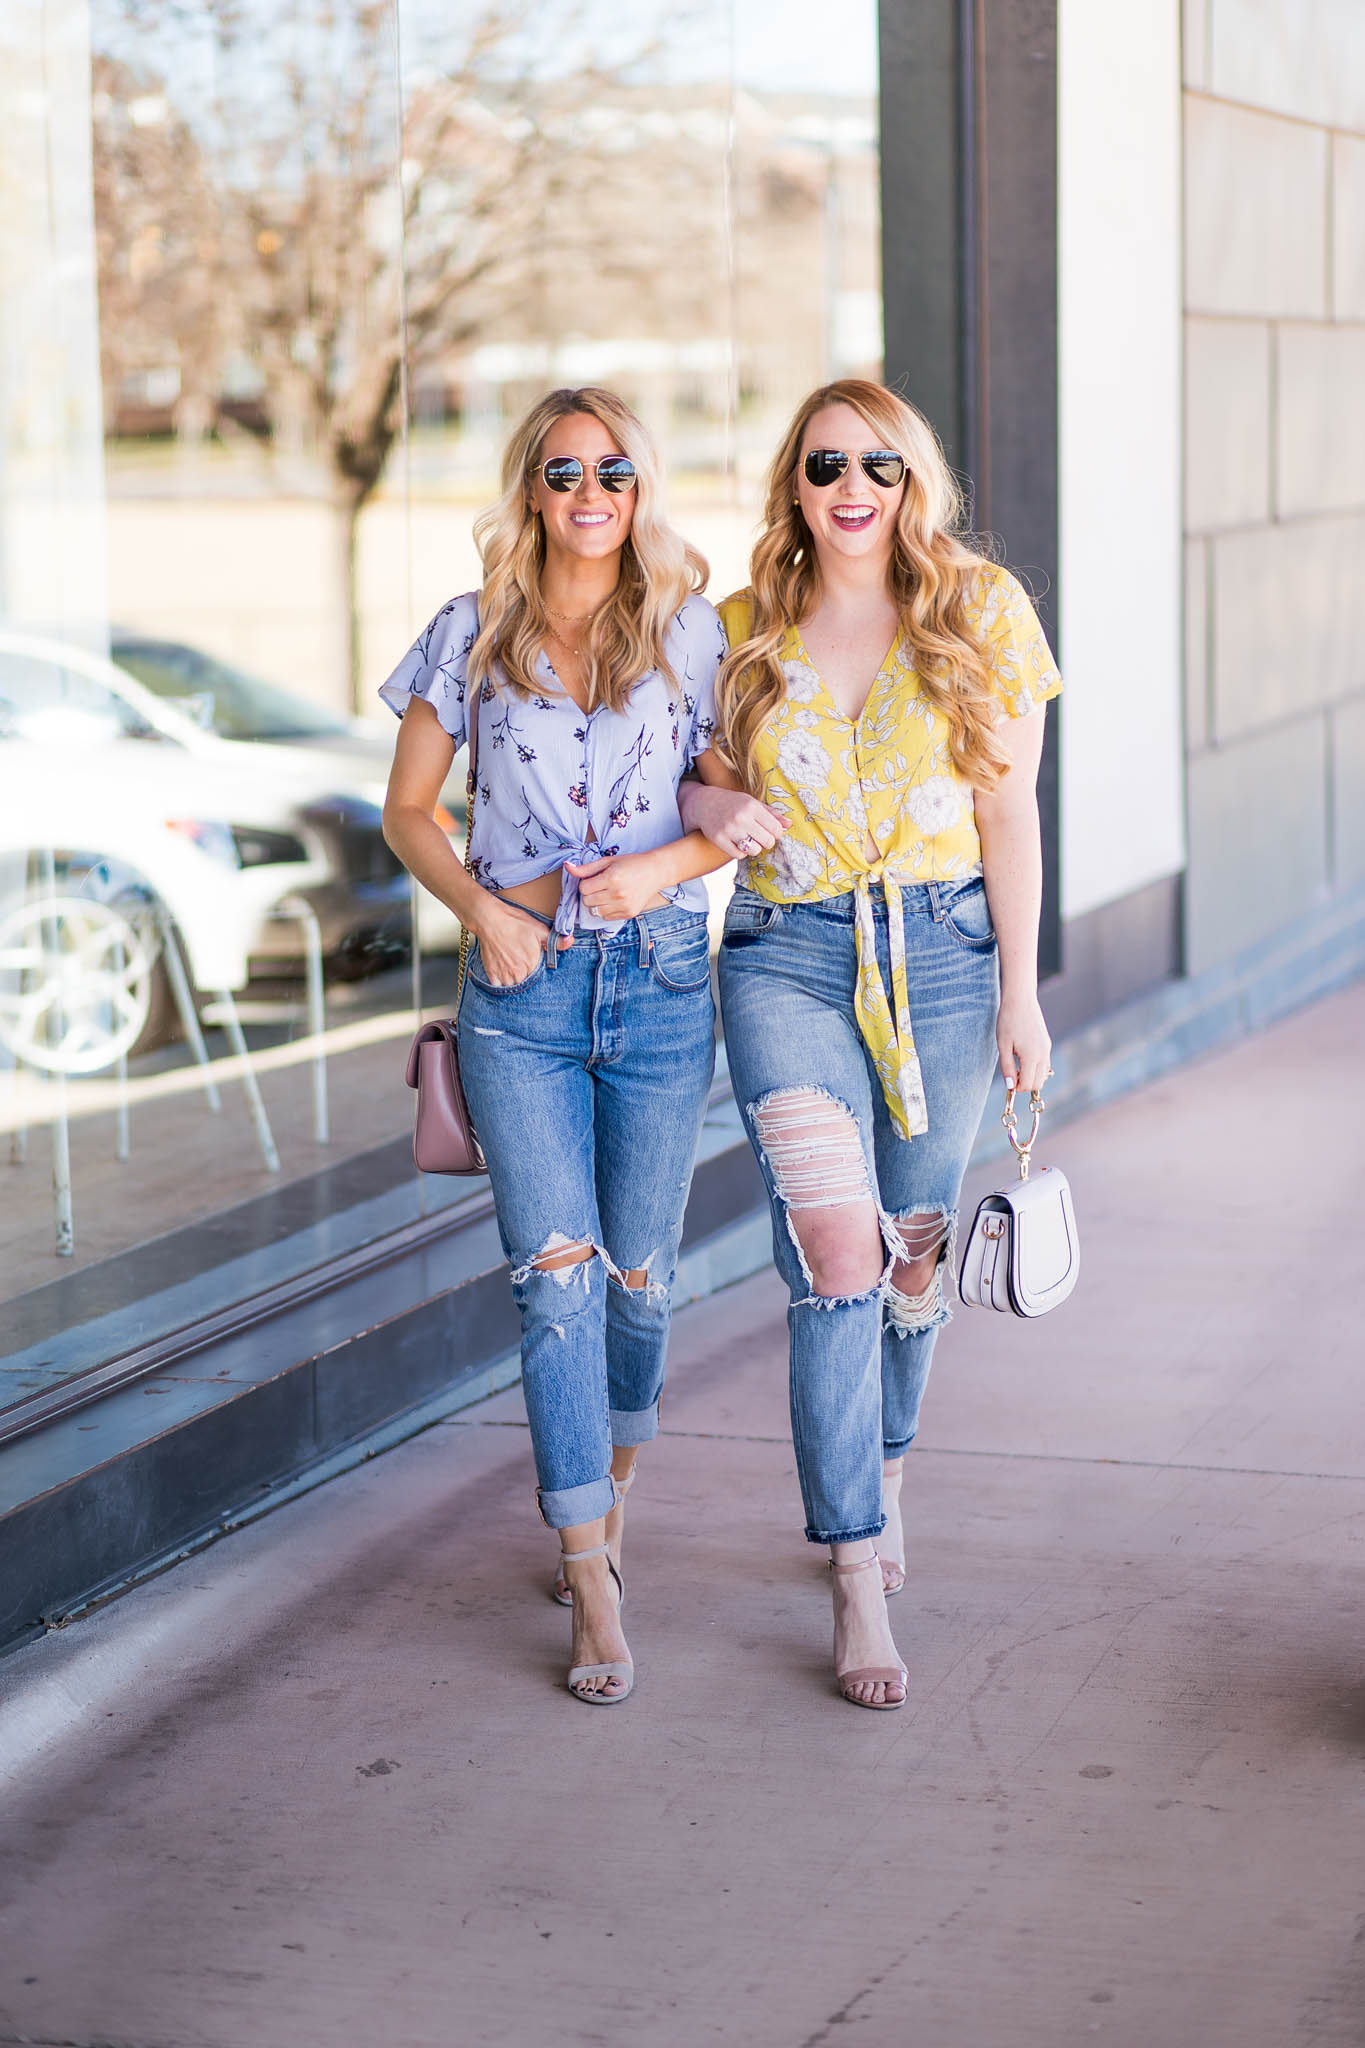 Spring Florals and Sweet Friends